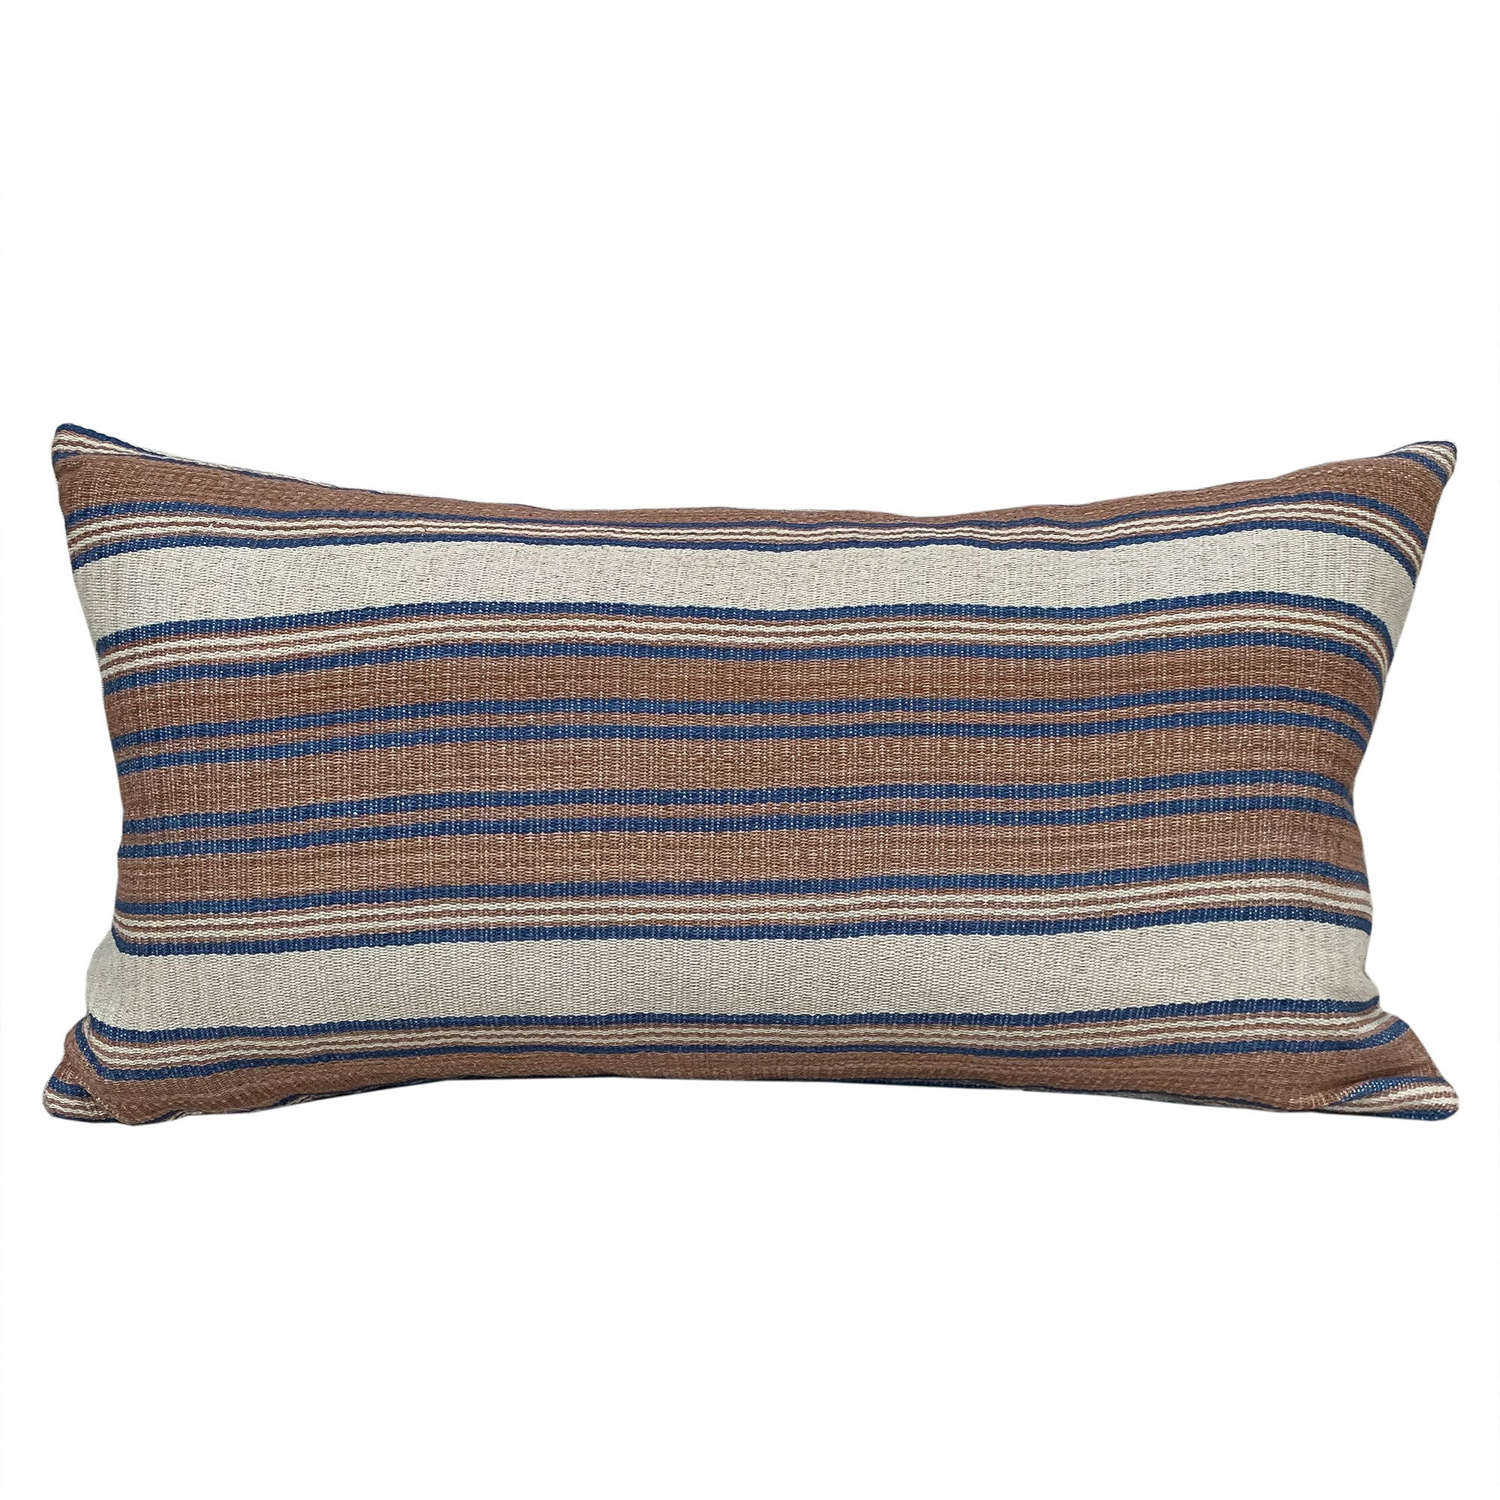 Karen hemp cushion